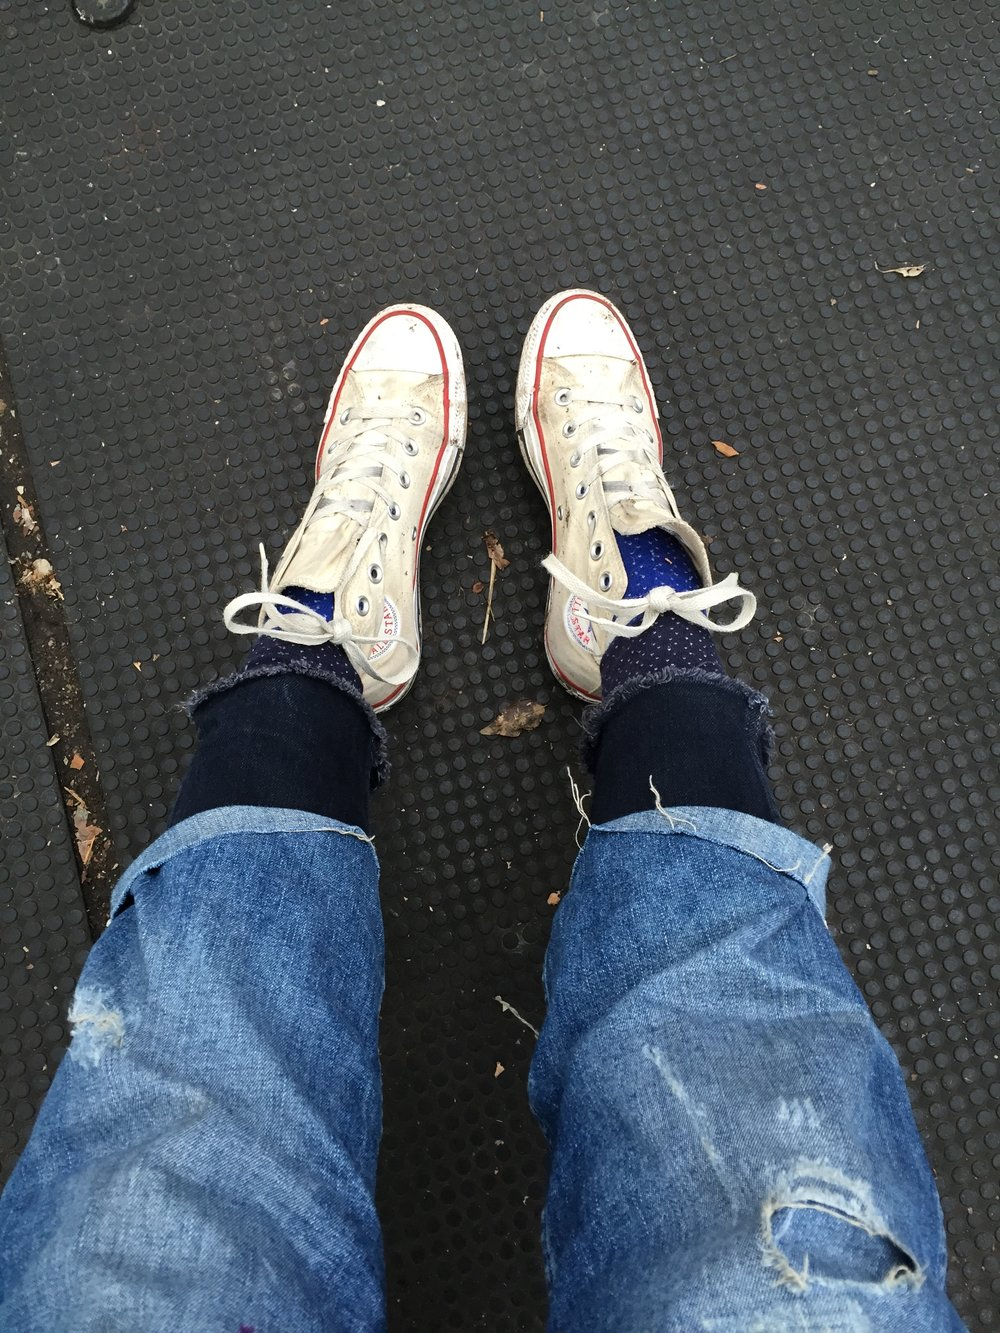 Jeans over jeans. Self portrait.